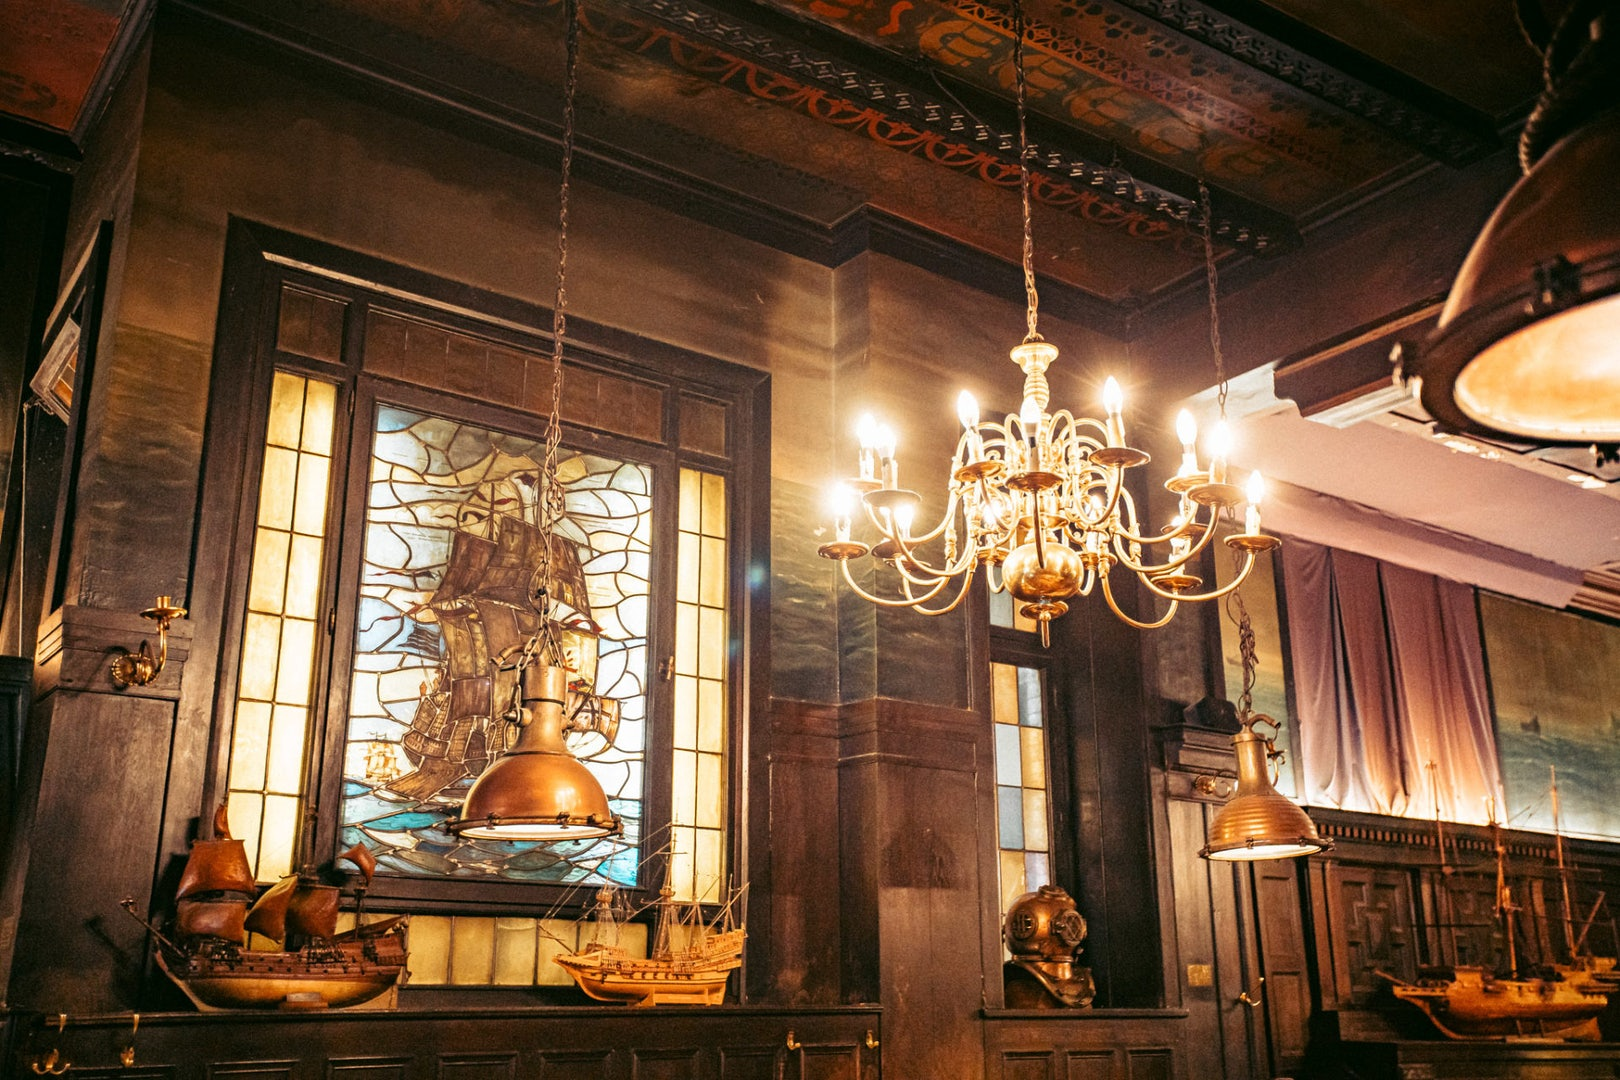 old wooden interior and stained glass at the Shifferbörse in Hamburg